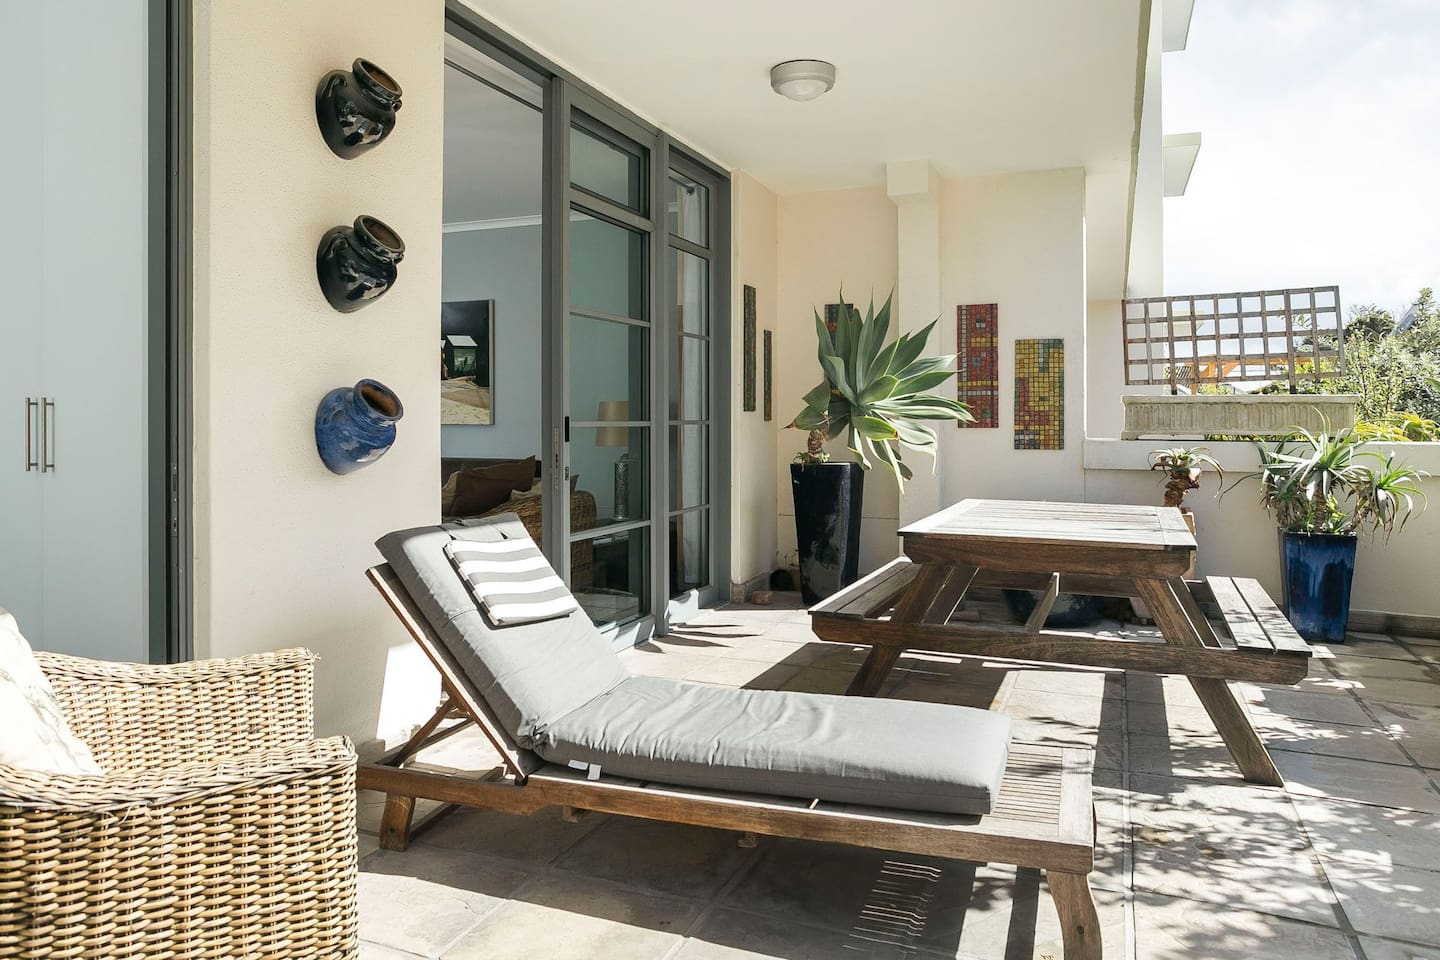 Your own sun terrace.  Get bronzed up before hitting the beach or just chill and read a book. You deserve it.